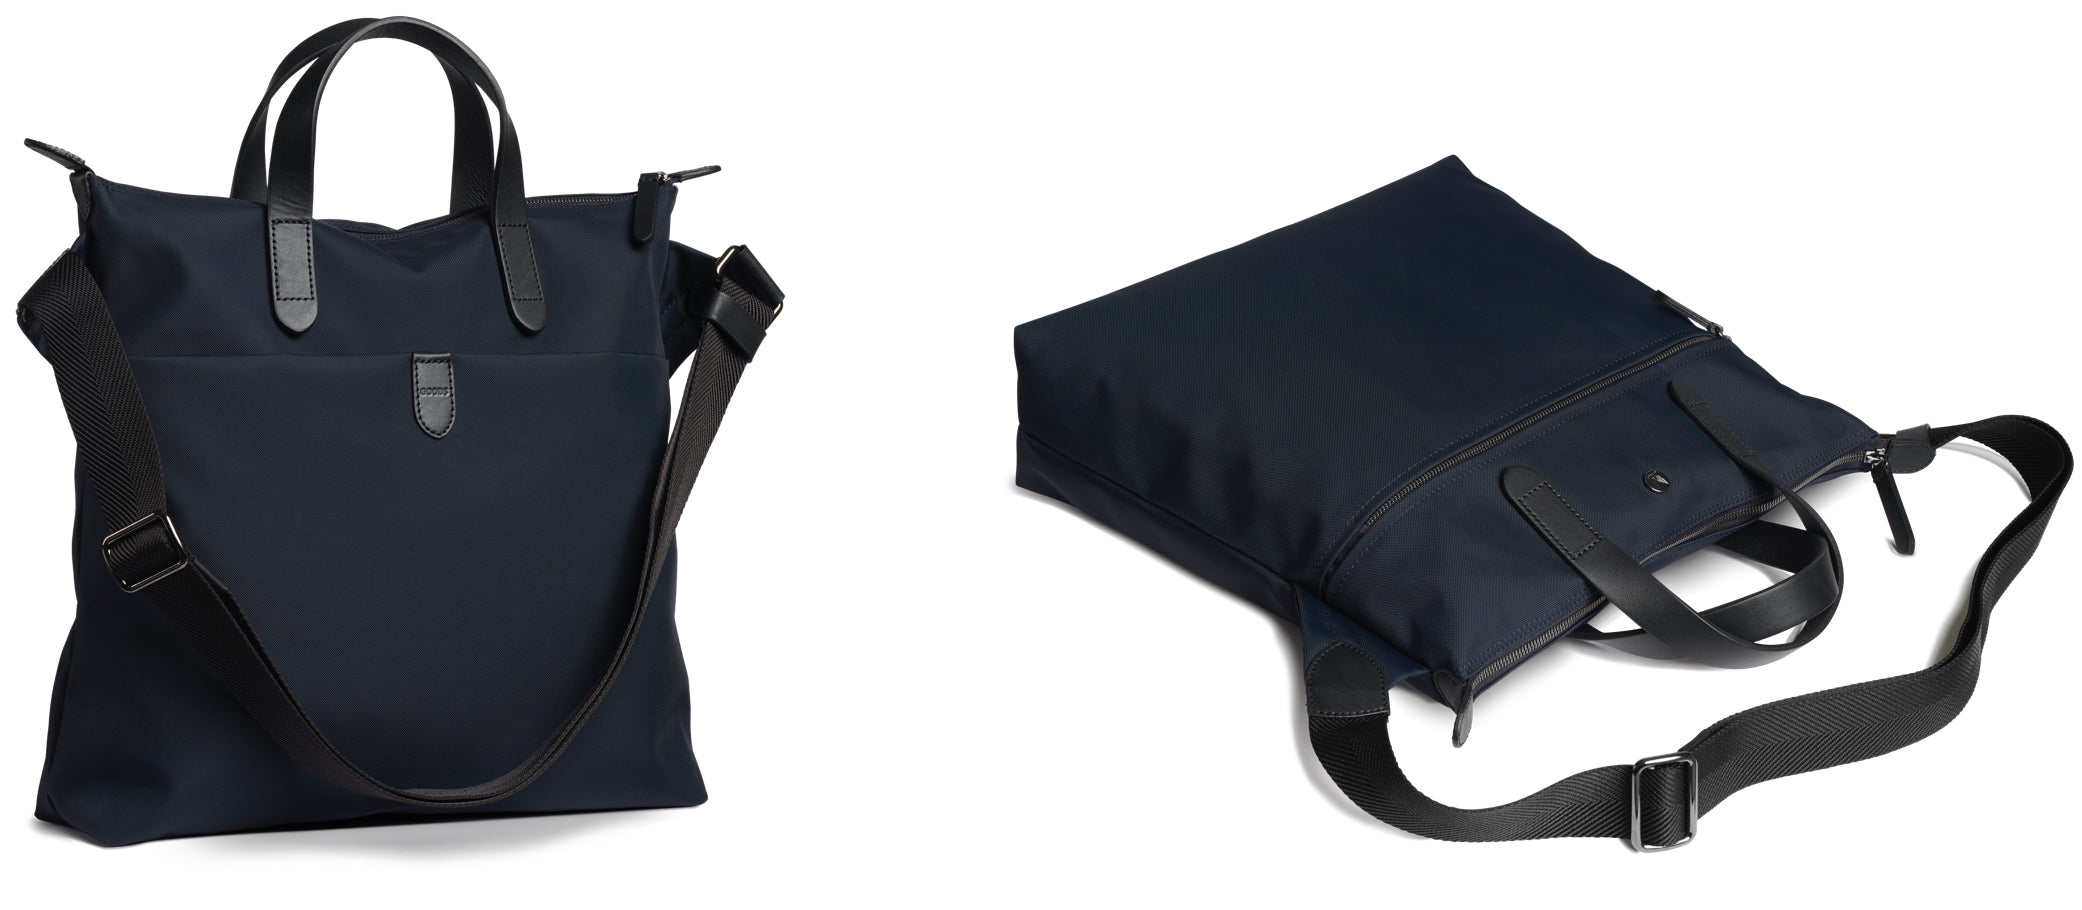 MS Goods Shopper Navy Nylon